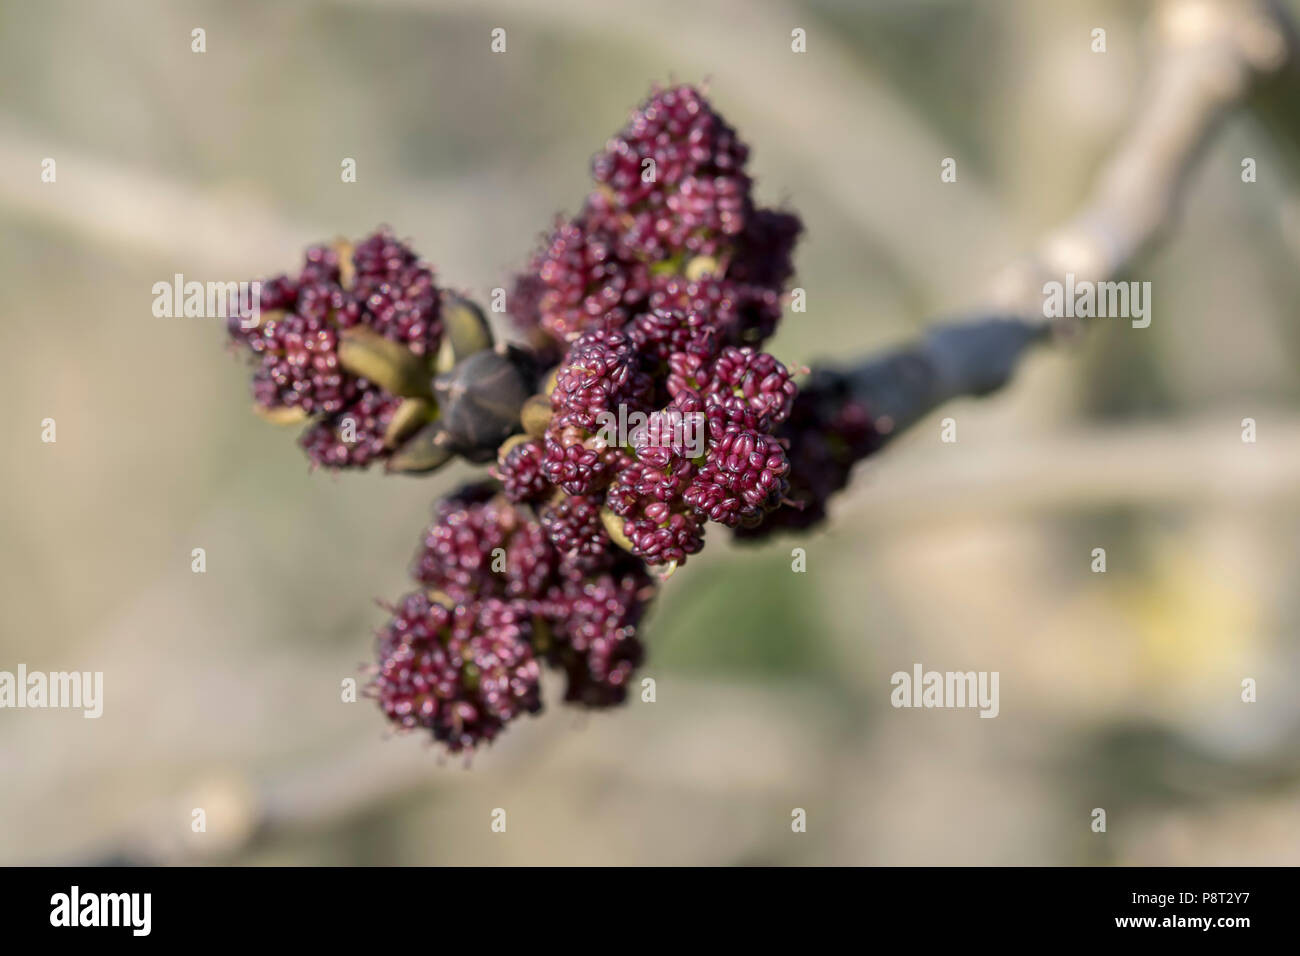 Common ash tree fraxinus excelsior early spring flower buds stock common ash tree fraxinus excelsior early spring flower buds mightylinksfo